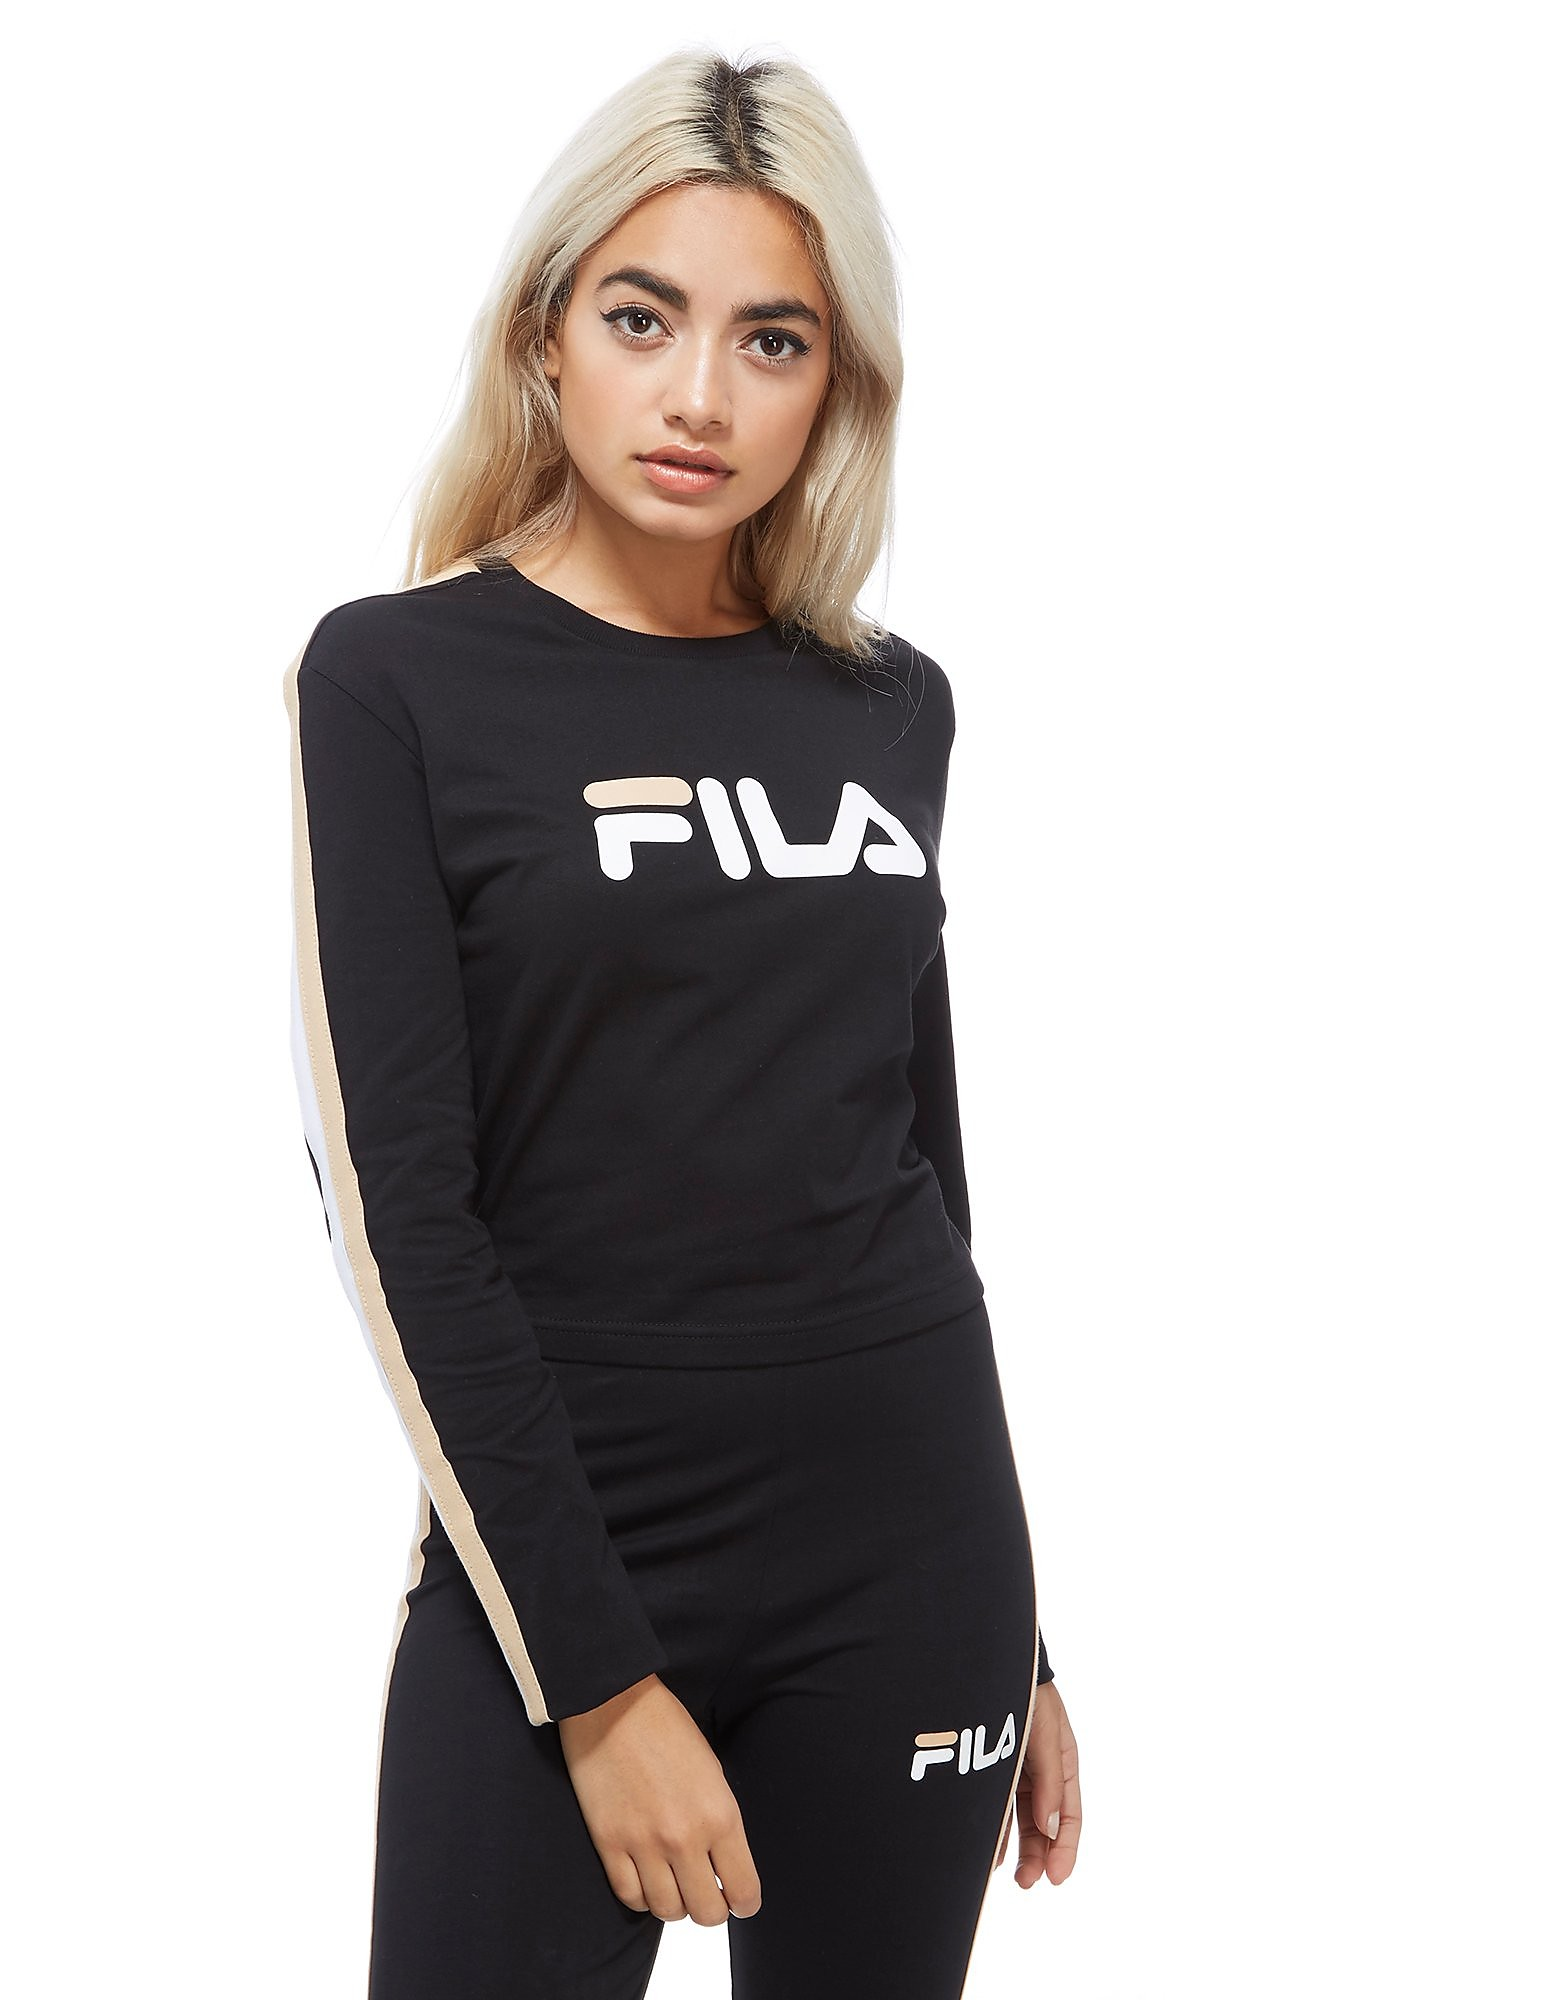 Fila camiseta de manga larga Crop Top